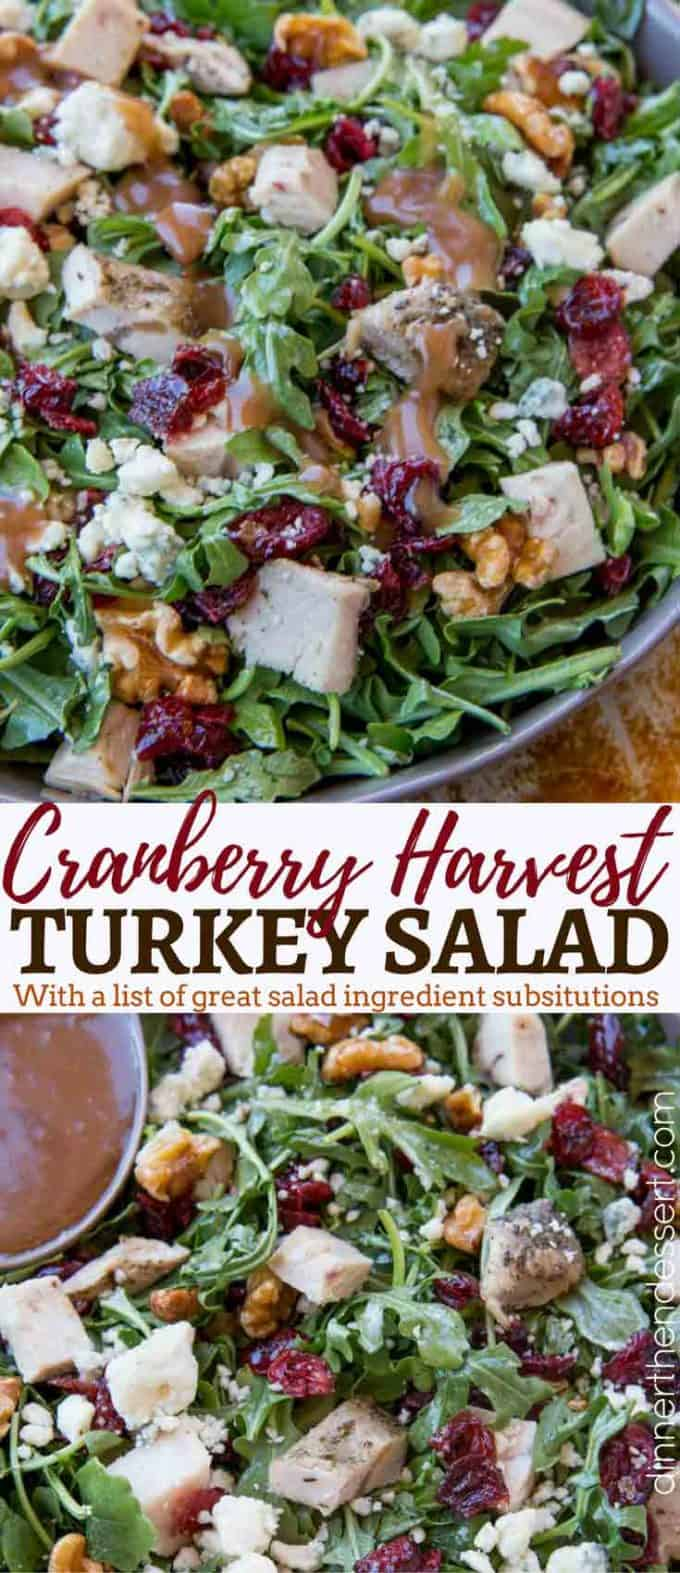 Cranberry Harvest Turkey Salad made with arugula, turkey breast, cranberries, gorgonzola, and walnuts with a delicious and easy balsamic vinaigrette.